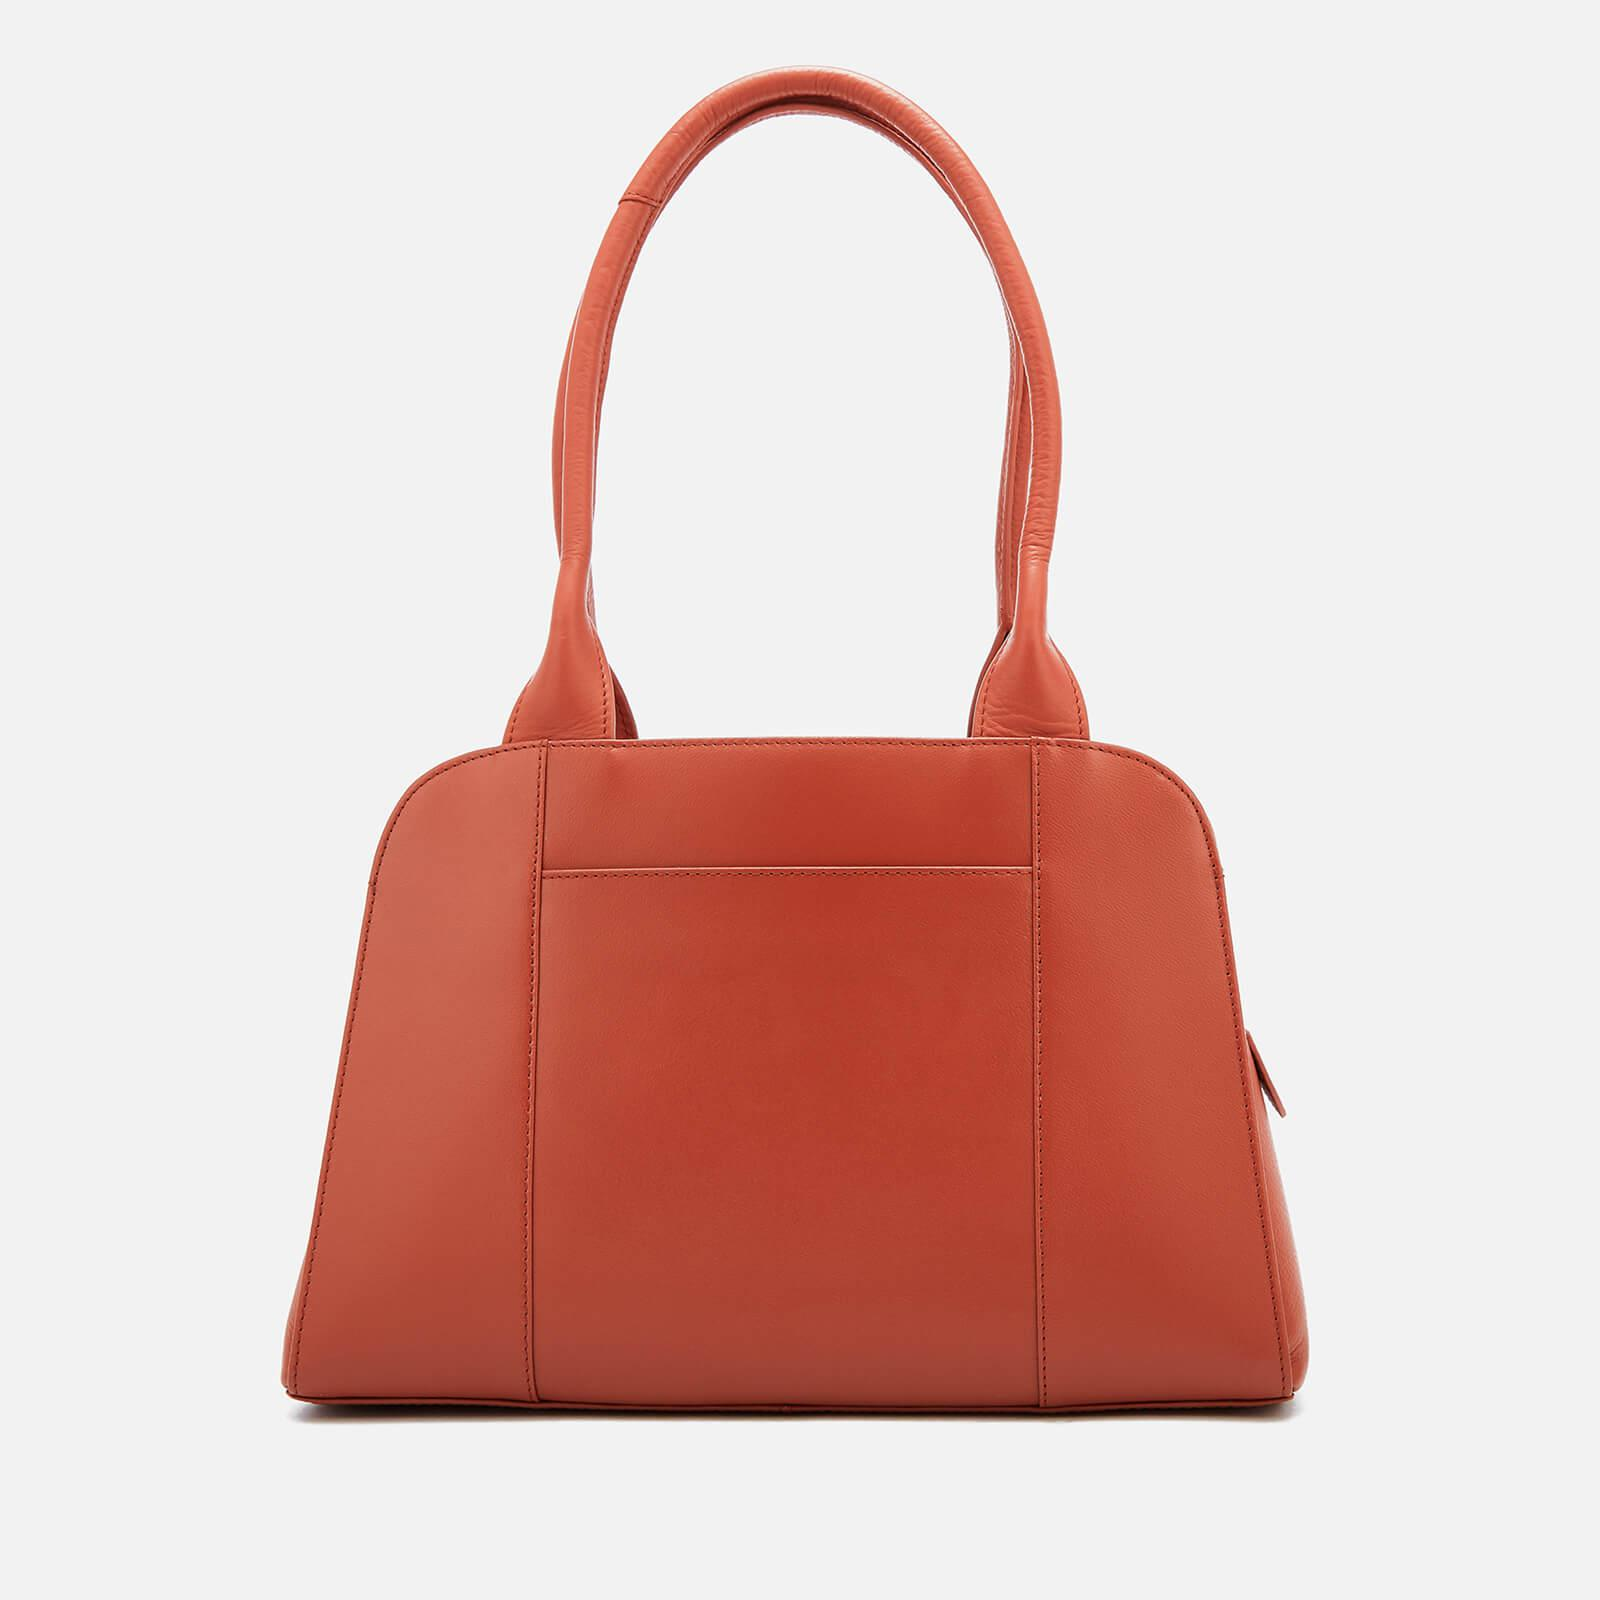 Radley Leather Millbank Medium Ziptop Tote Bag in Red